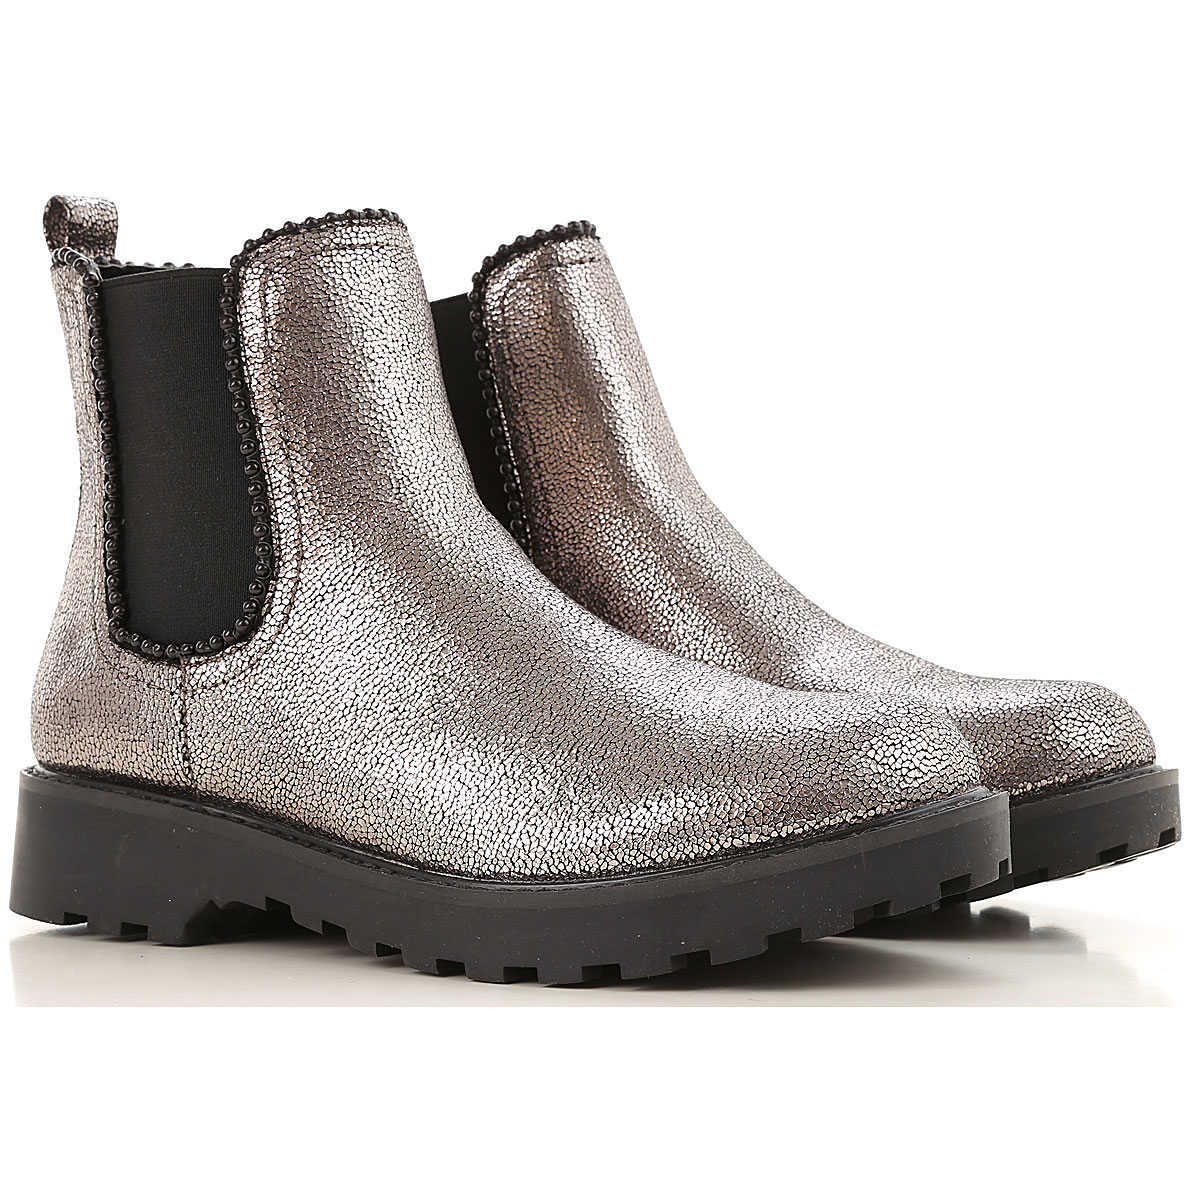 Guess Boots for Women 4.5 7.5 Booties On Sale in Outlet UK - GOOFASH